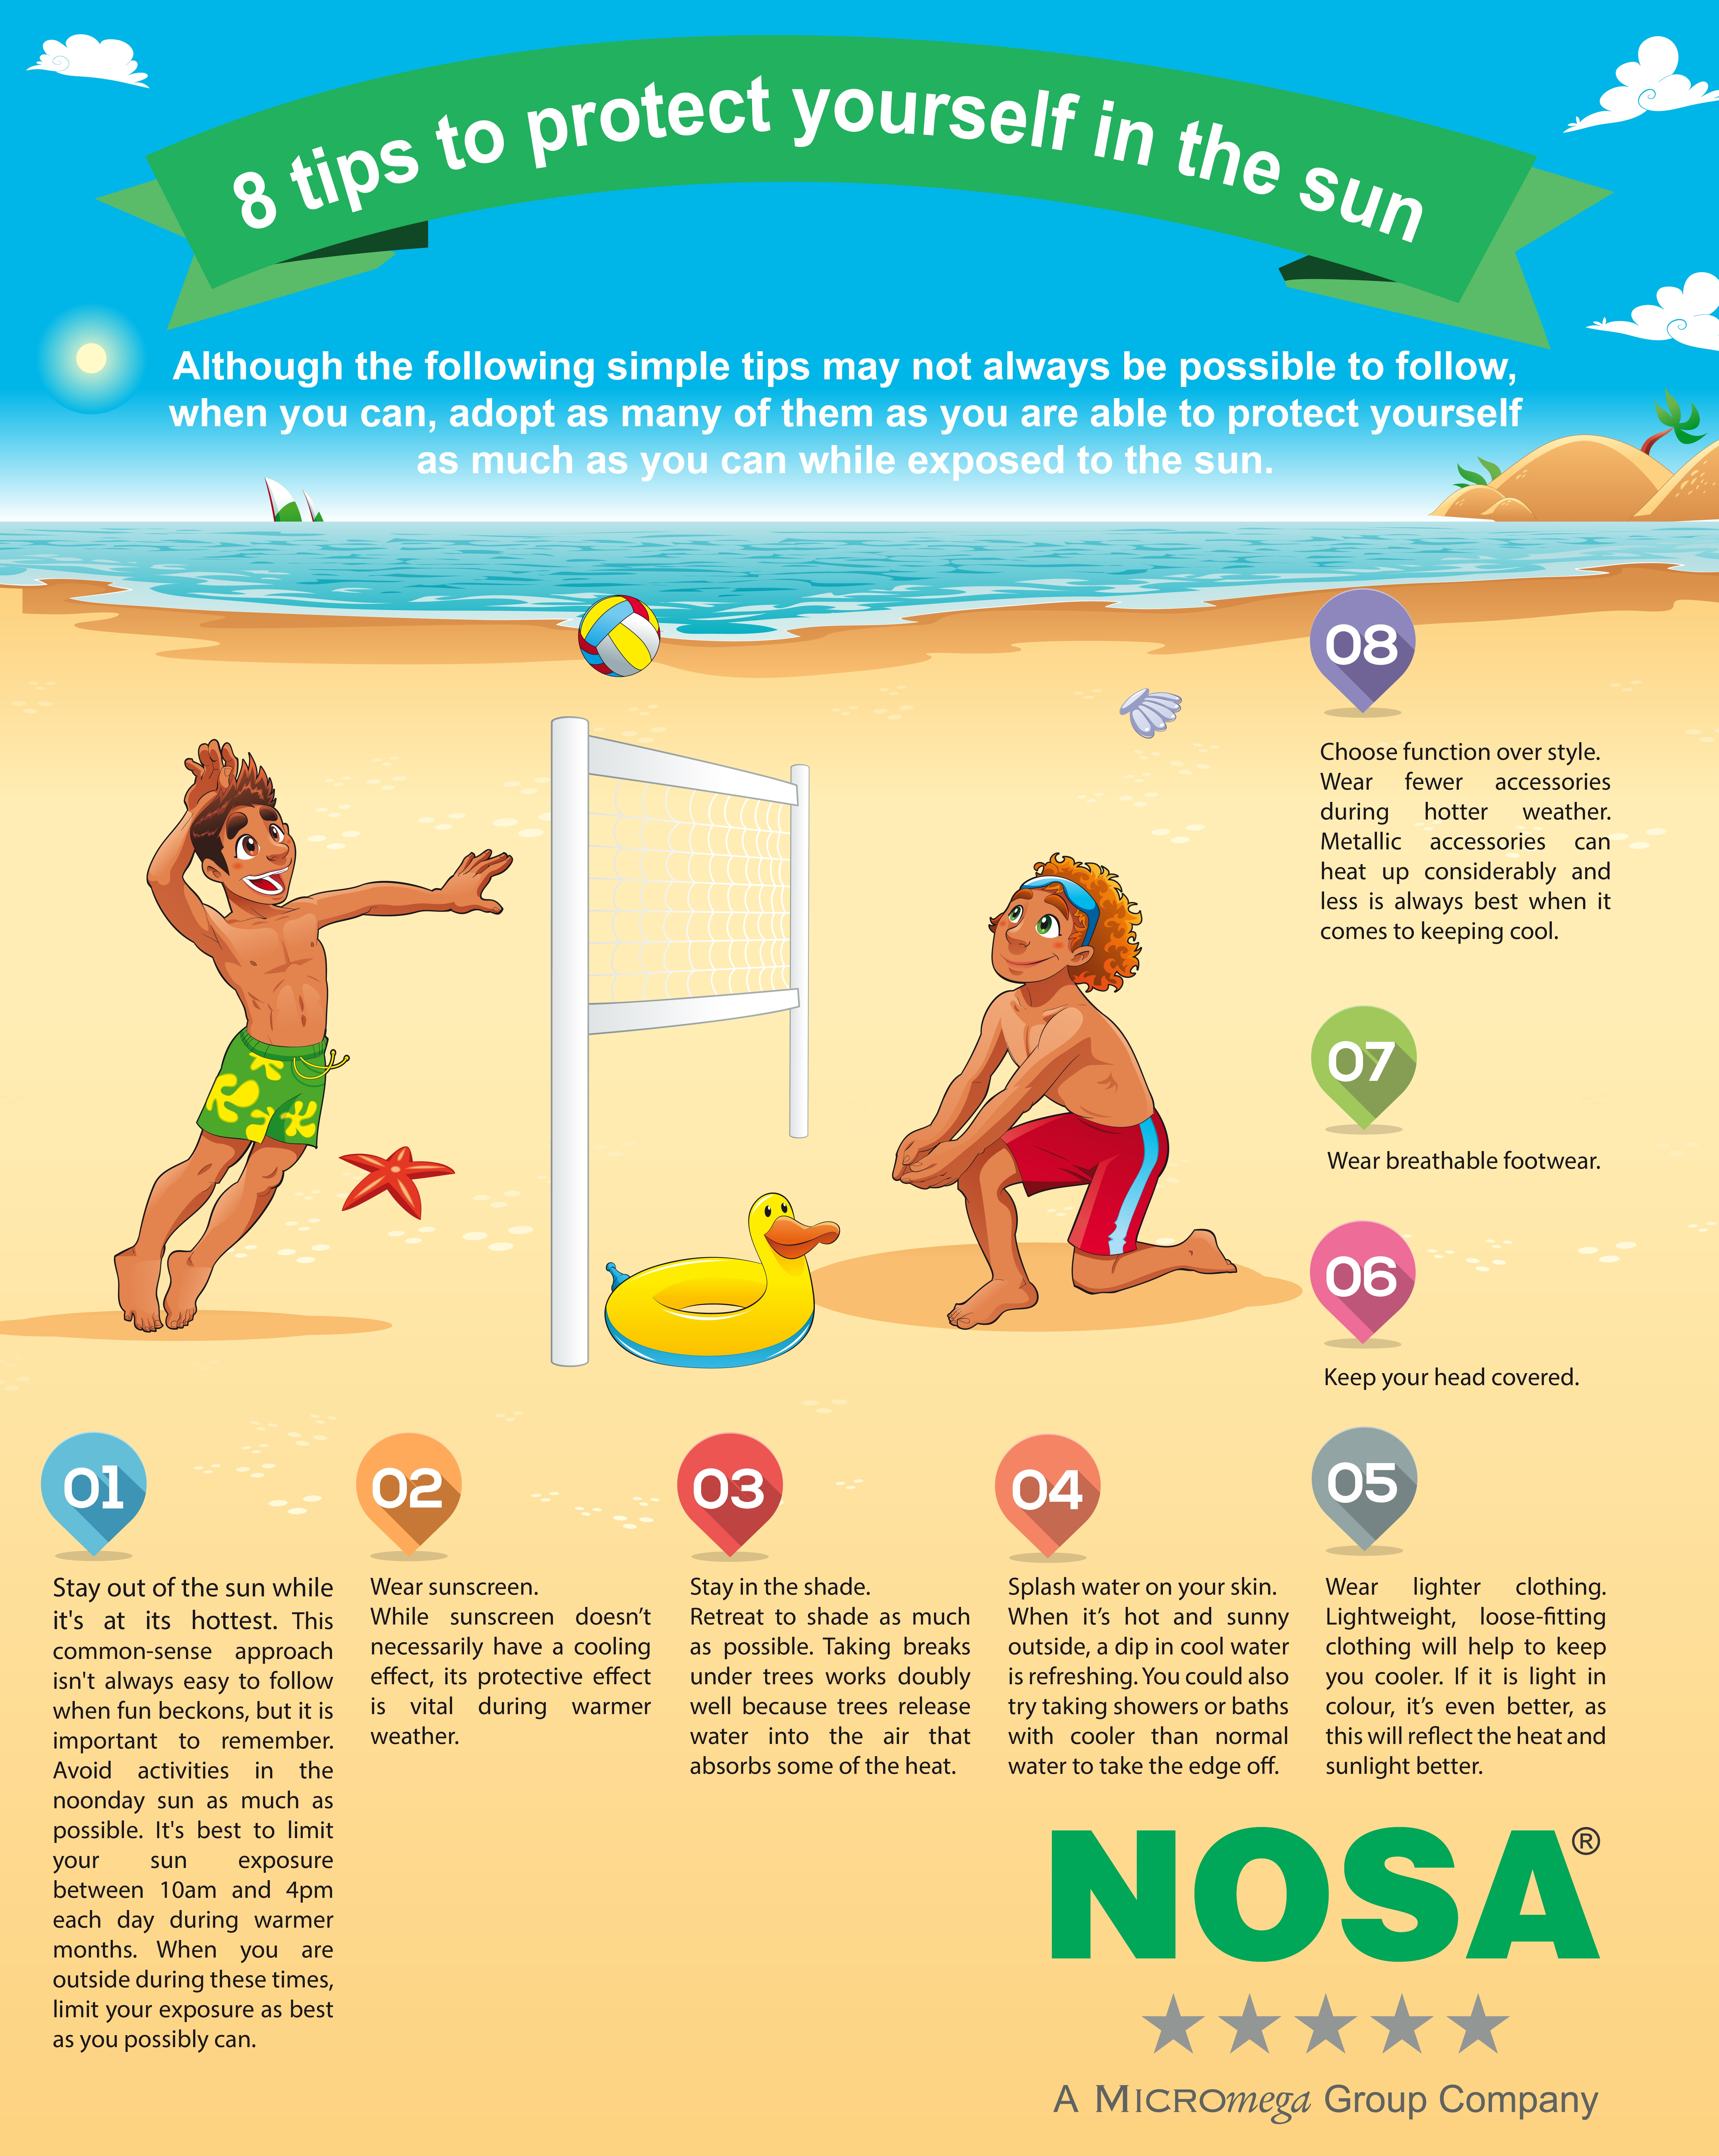 NOSA-8 tips to protect yourself in the sun-01.jpg